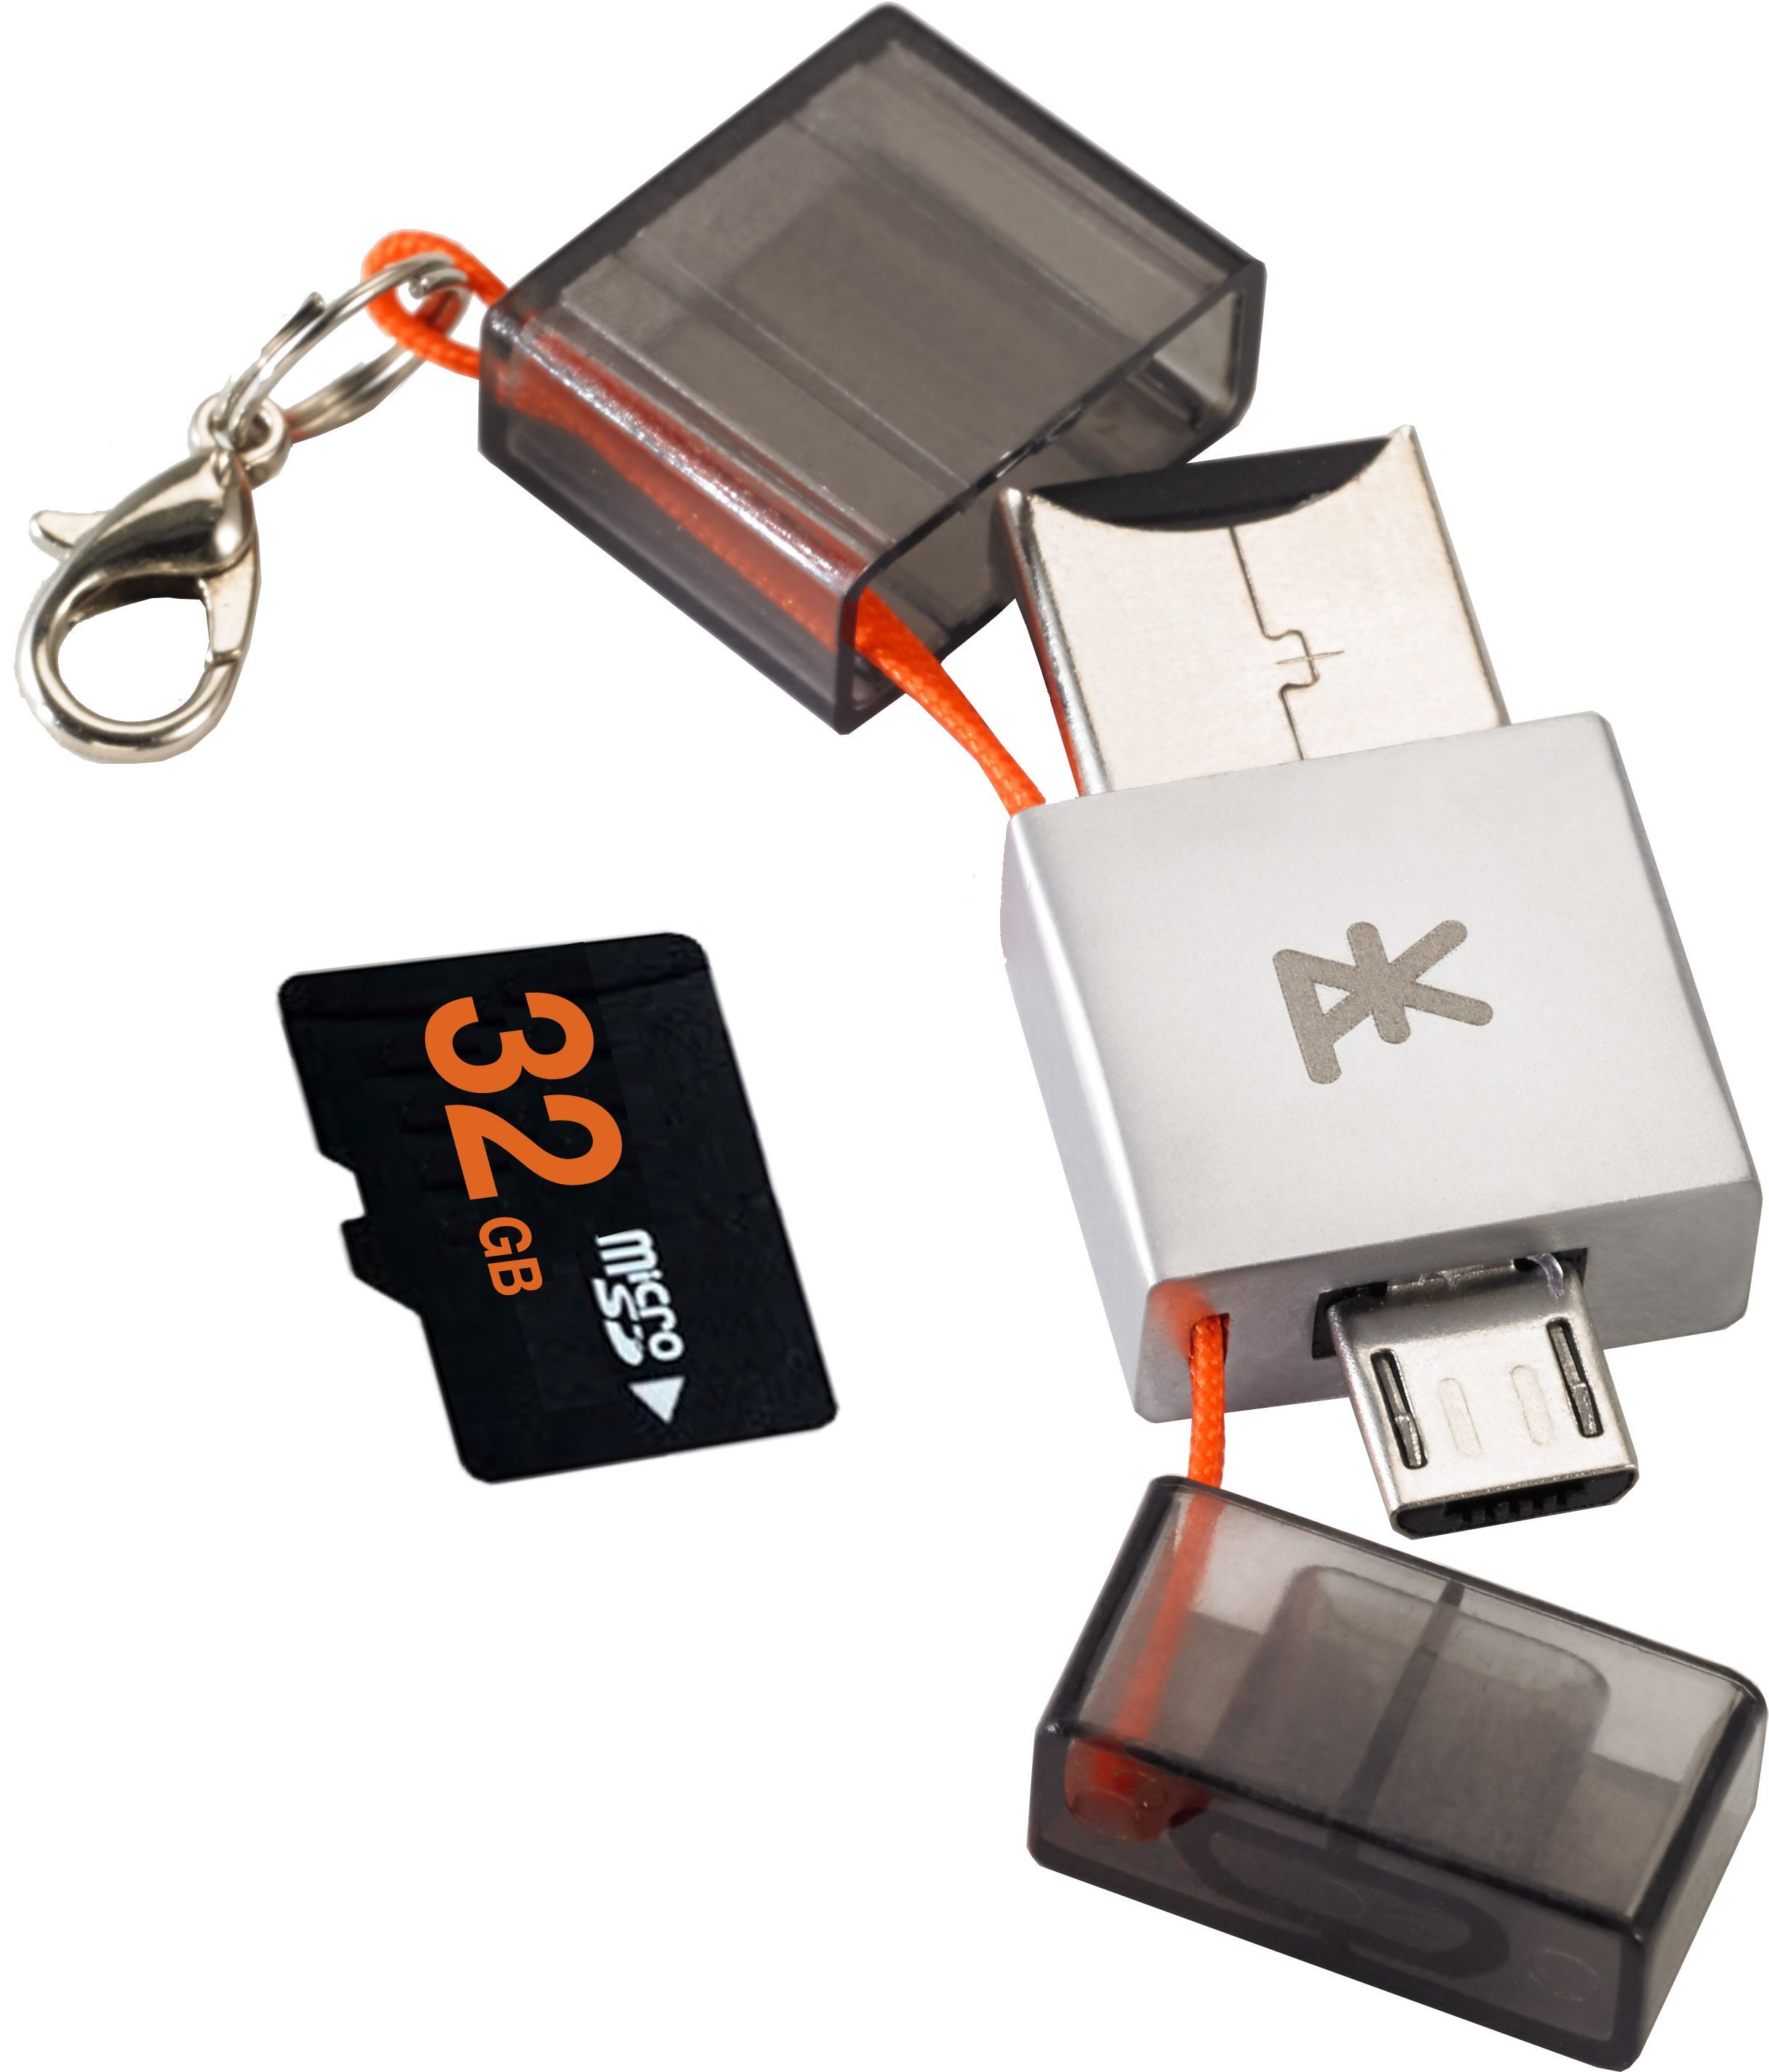 The PKparis K'2 has 16GB of storage, a USB connector, a Micro-USB connector, and a microSD slot.